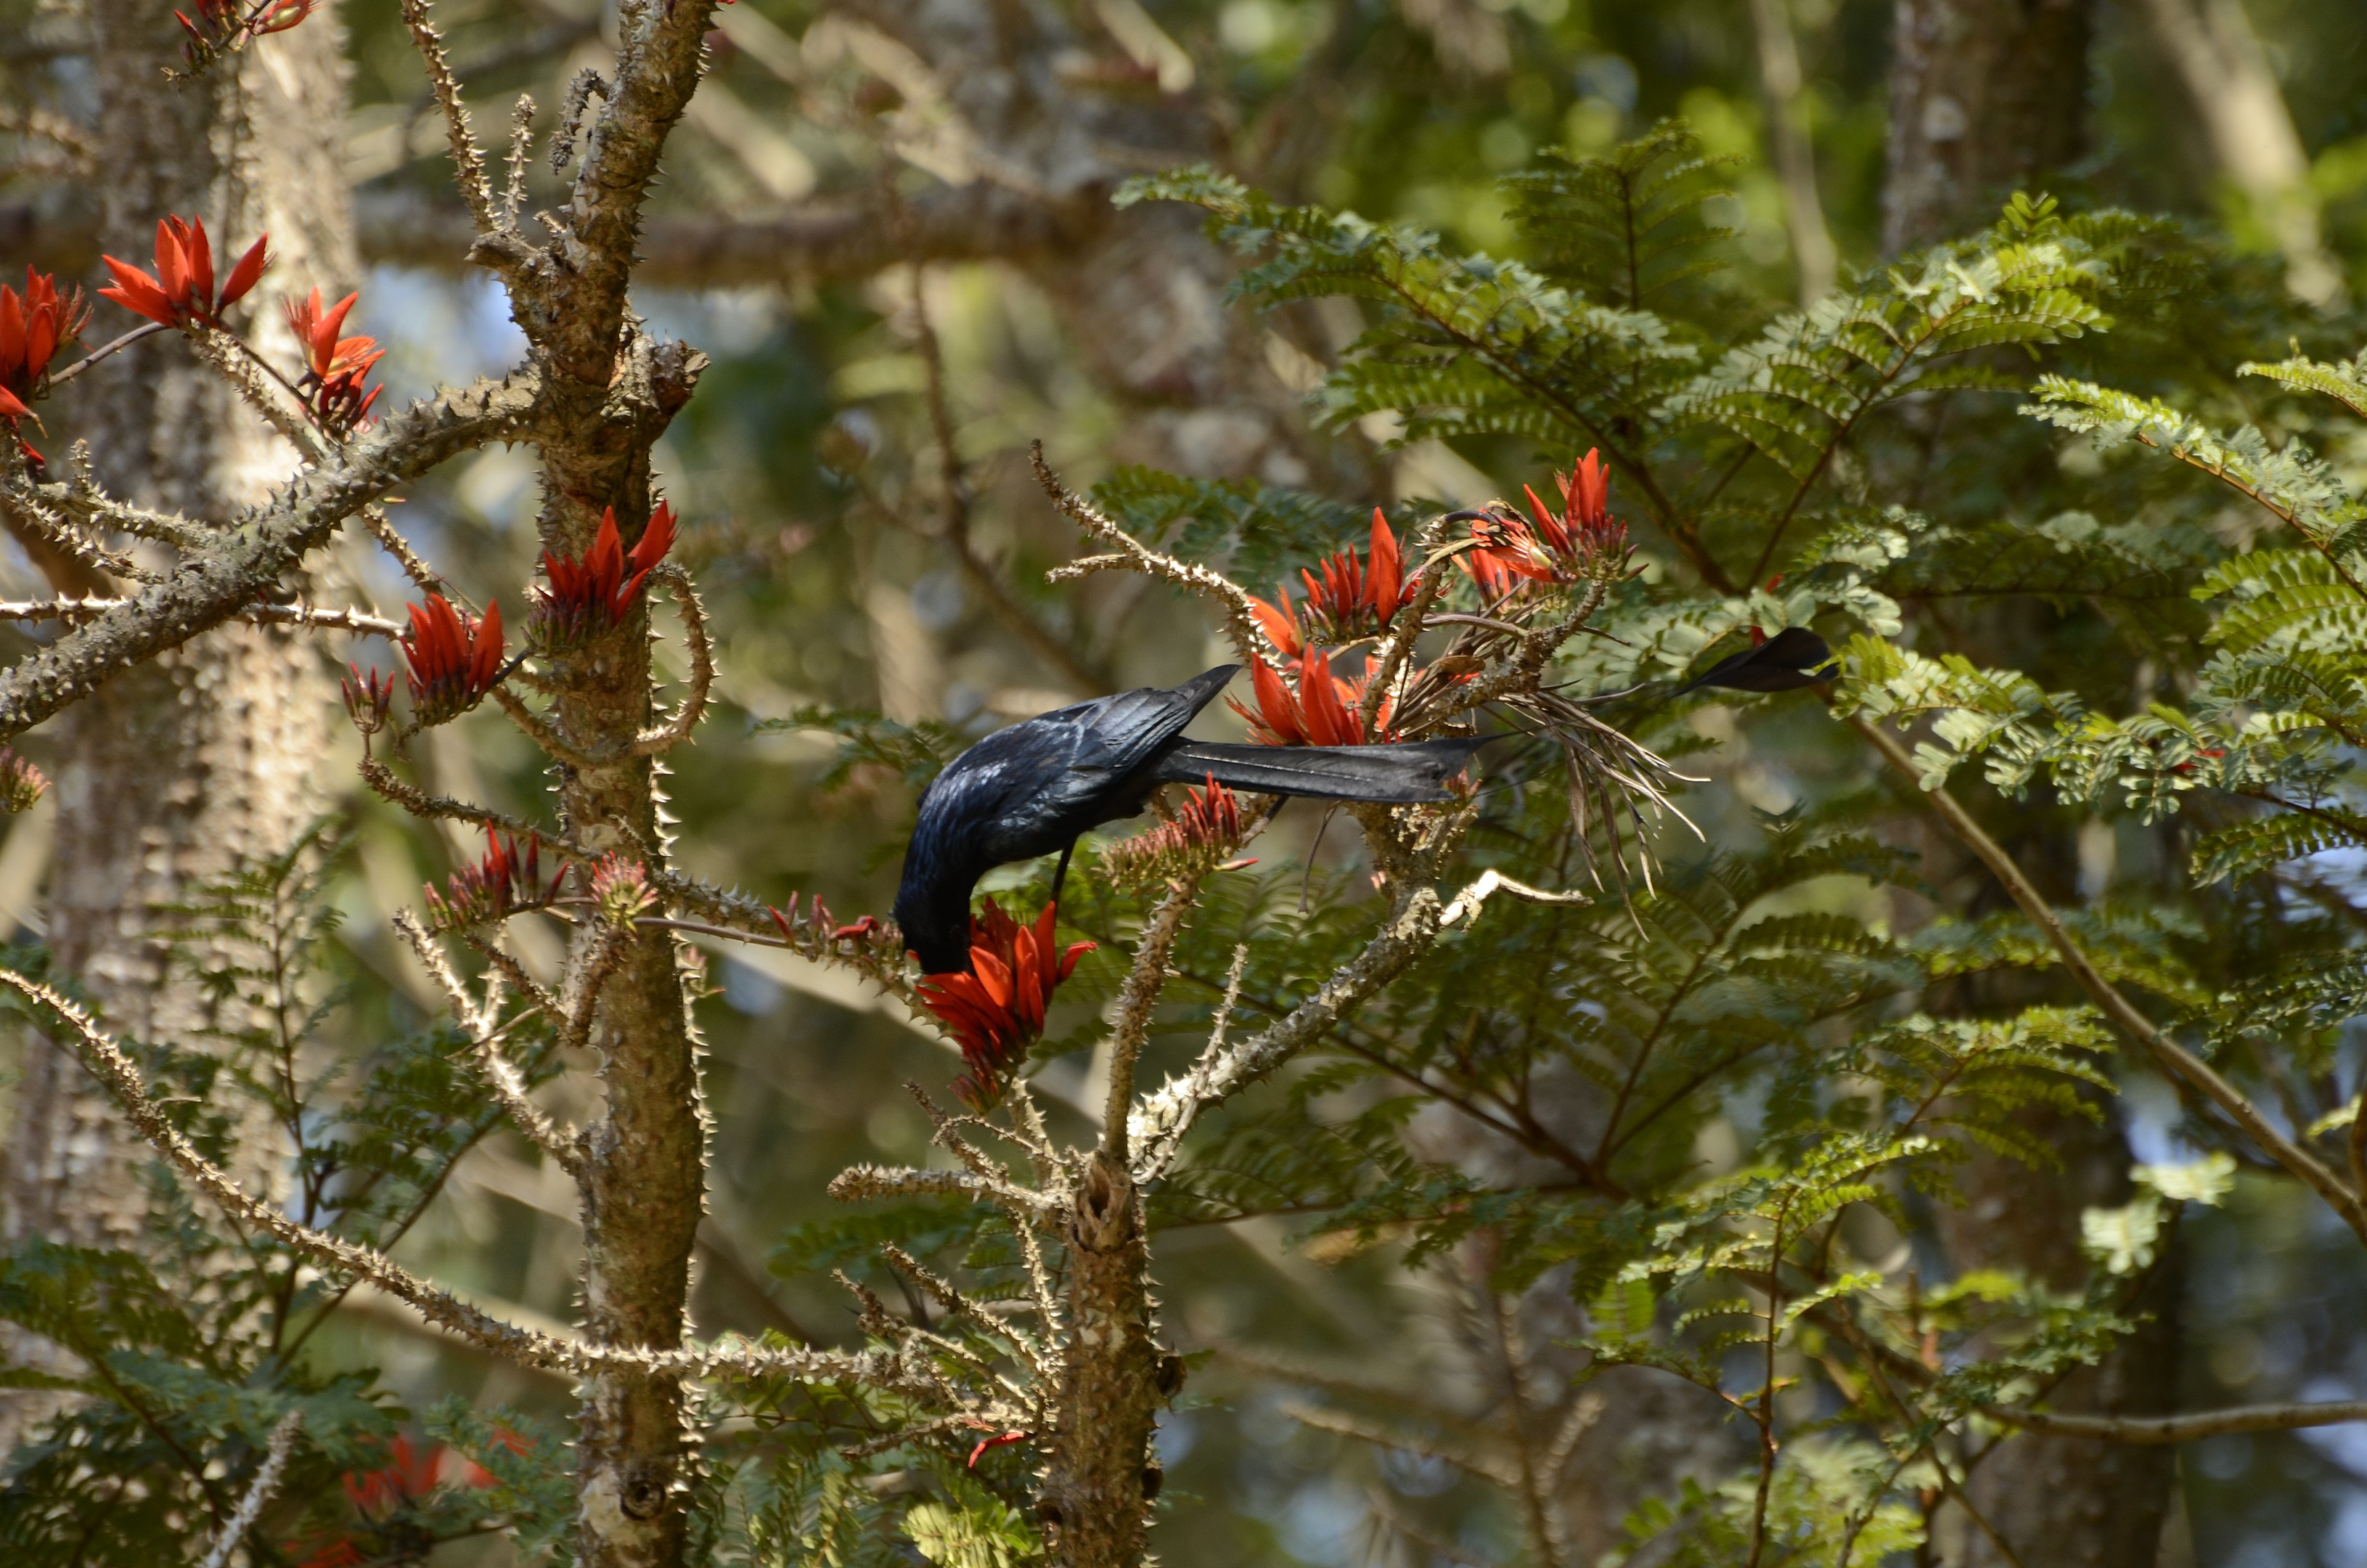 The brilliant, red upright flowers of the Indian coral tree attract birds like the greater racket-tailed drongo. The birds love the abundant nectar and in turn assist in pollination. Photo: P Jeganathan - CC BY-SA 4.0